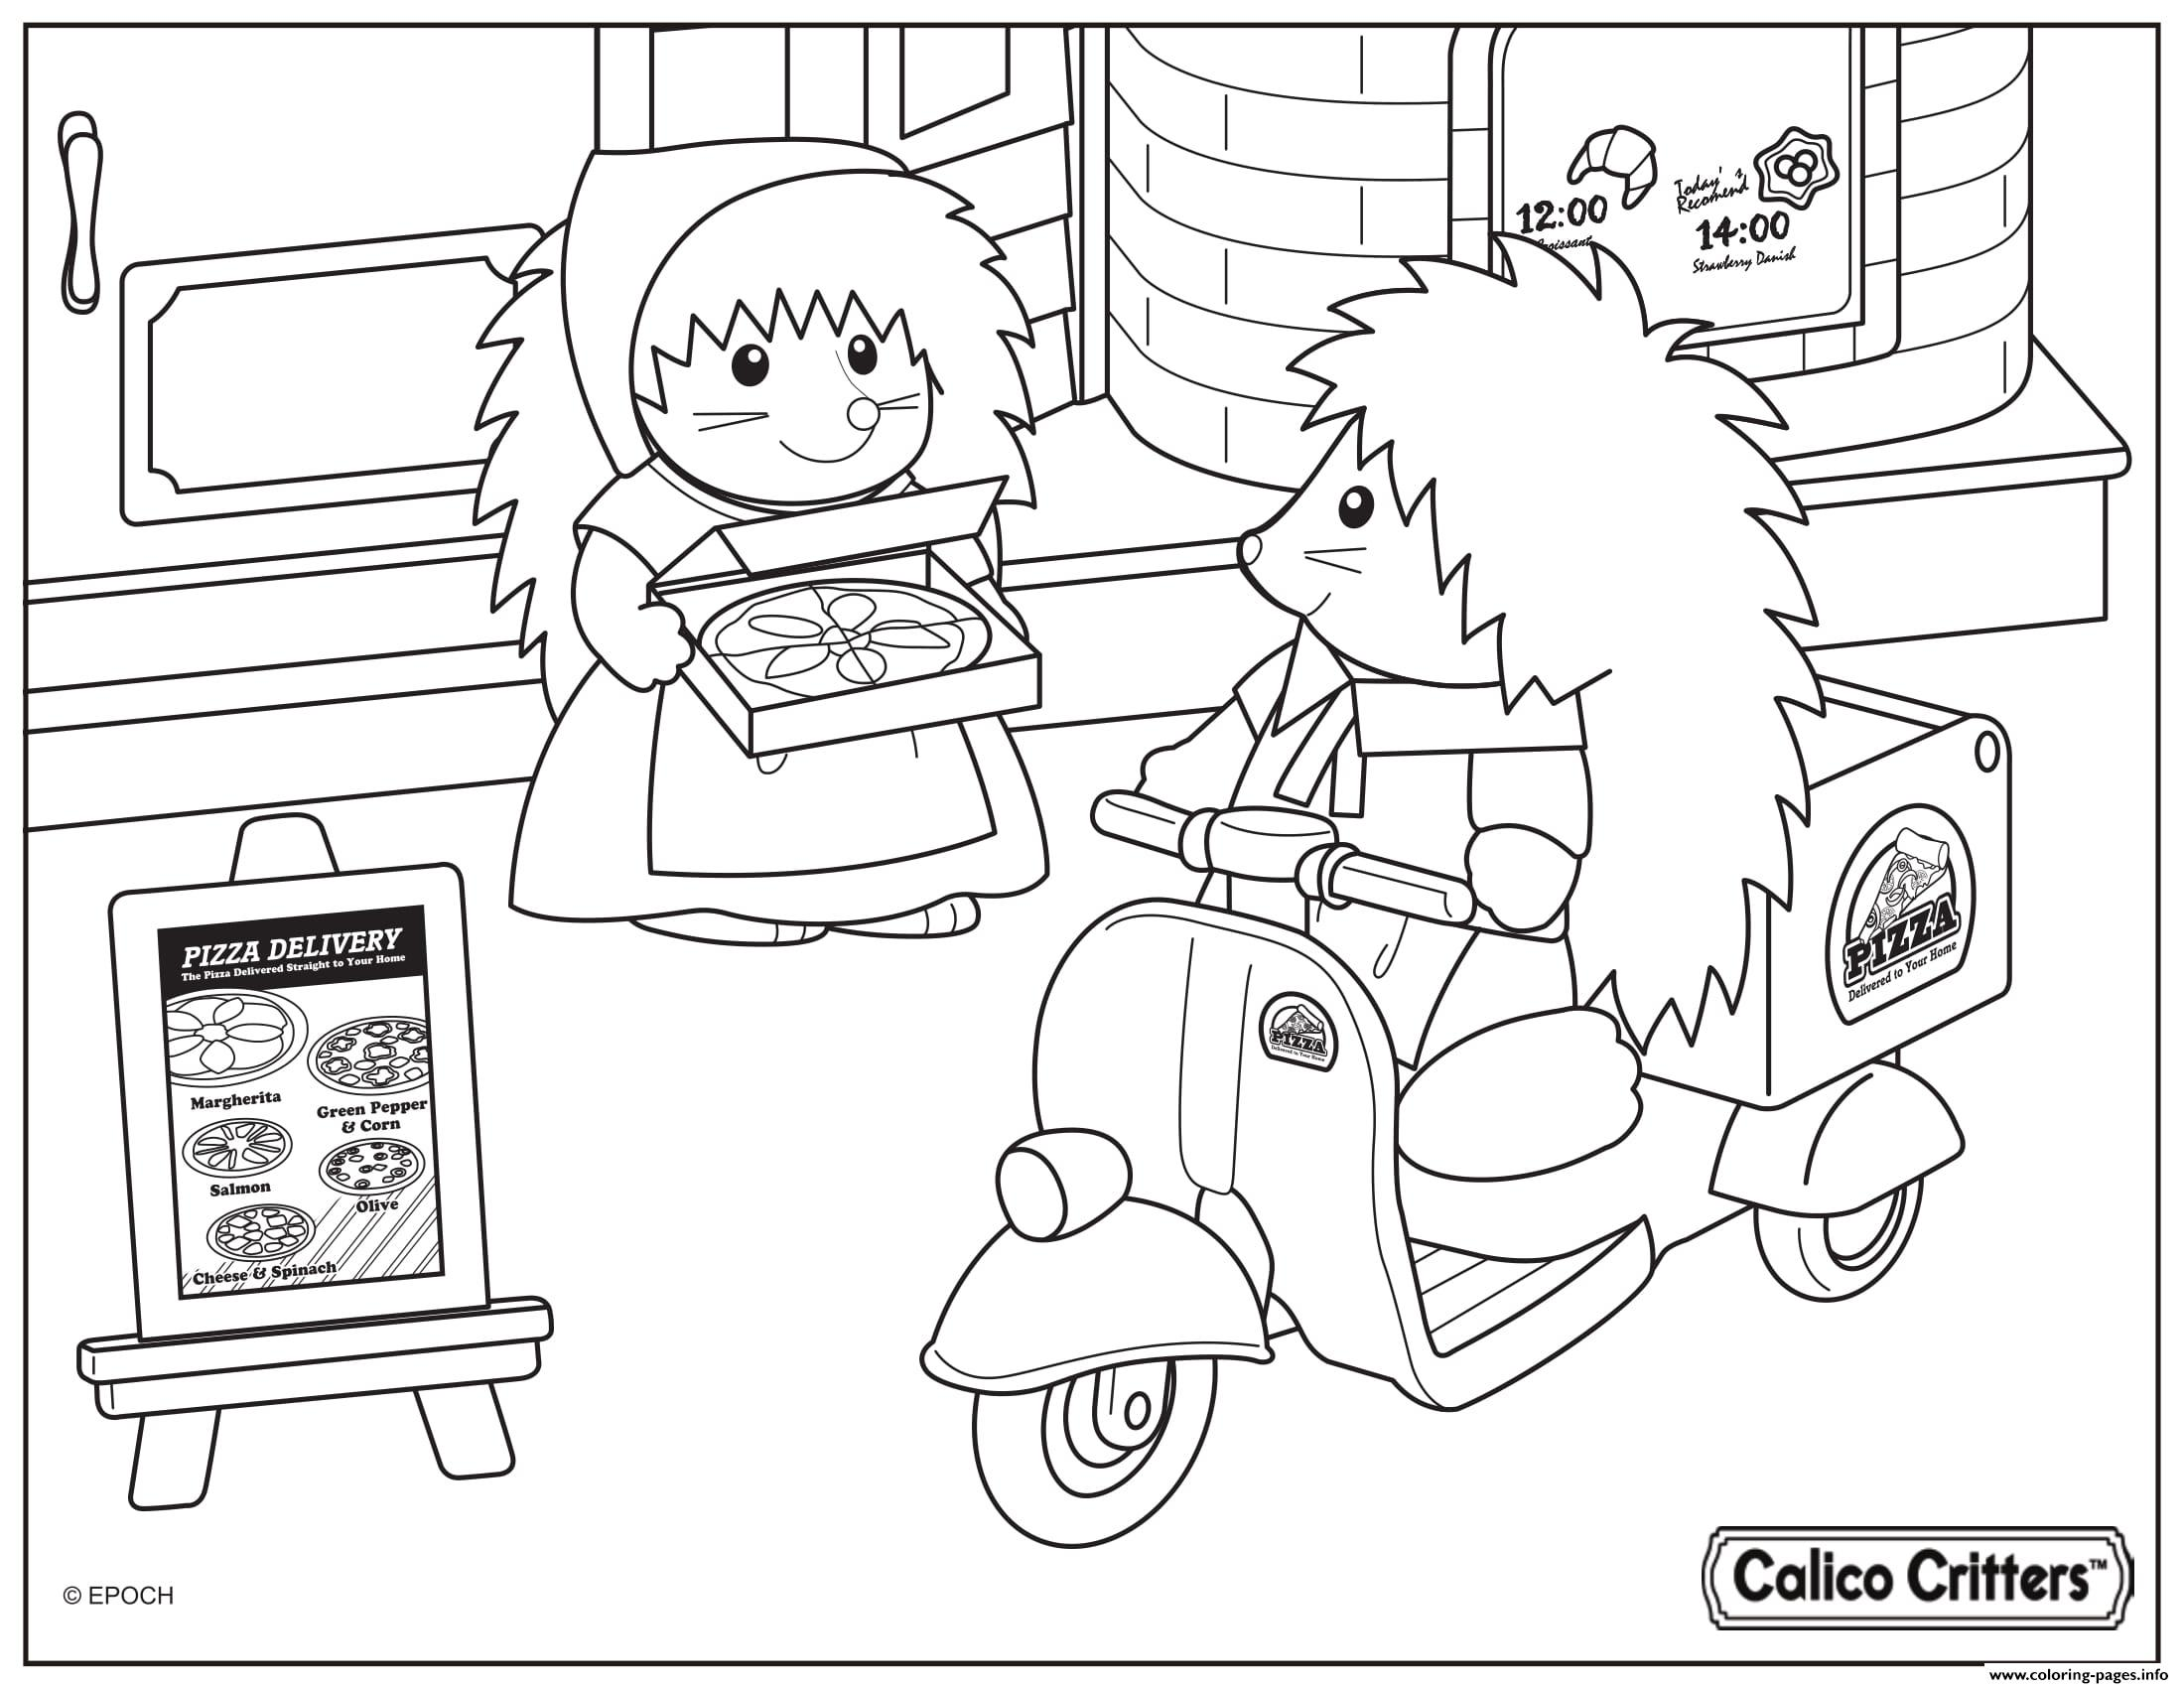 Calico Critters Pizza Delivery coloring pages